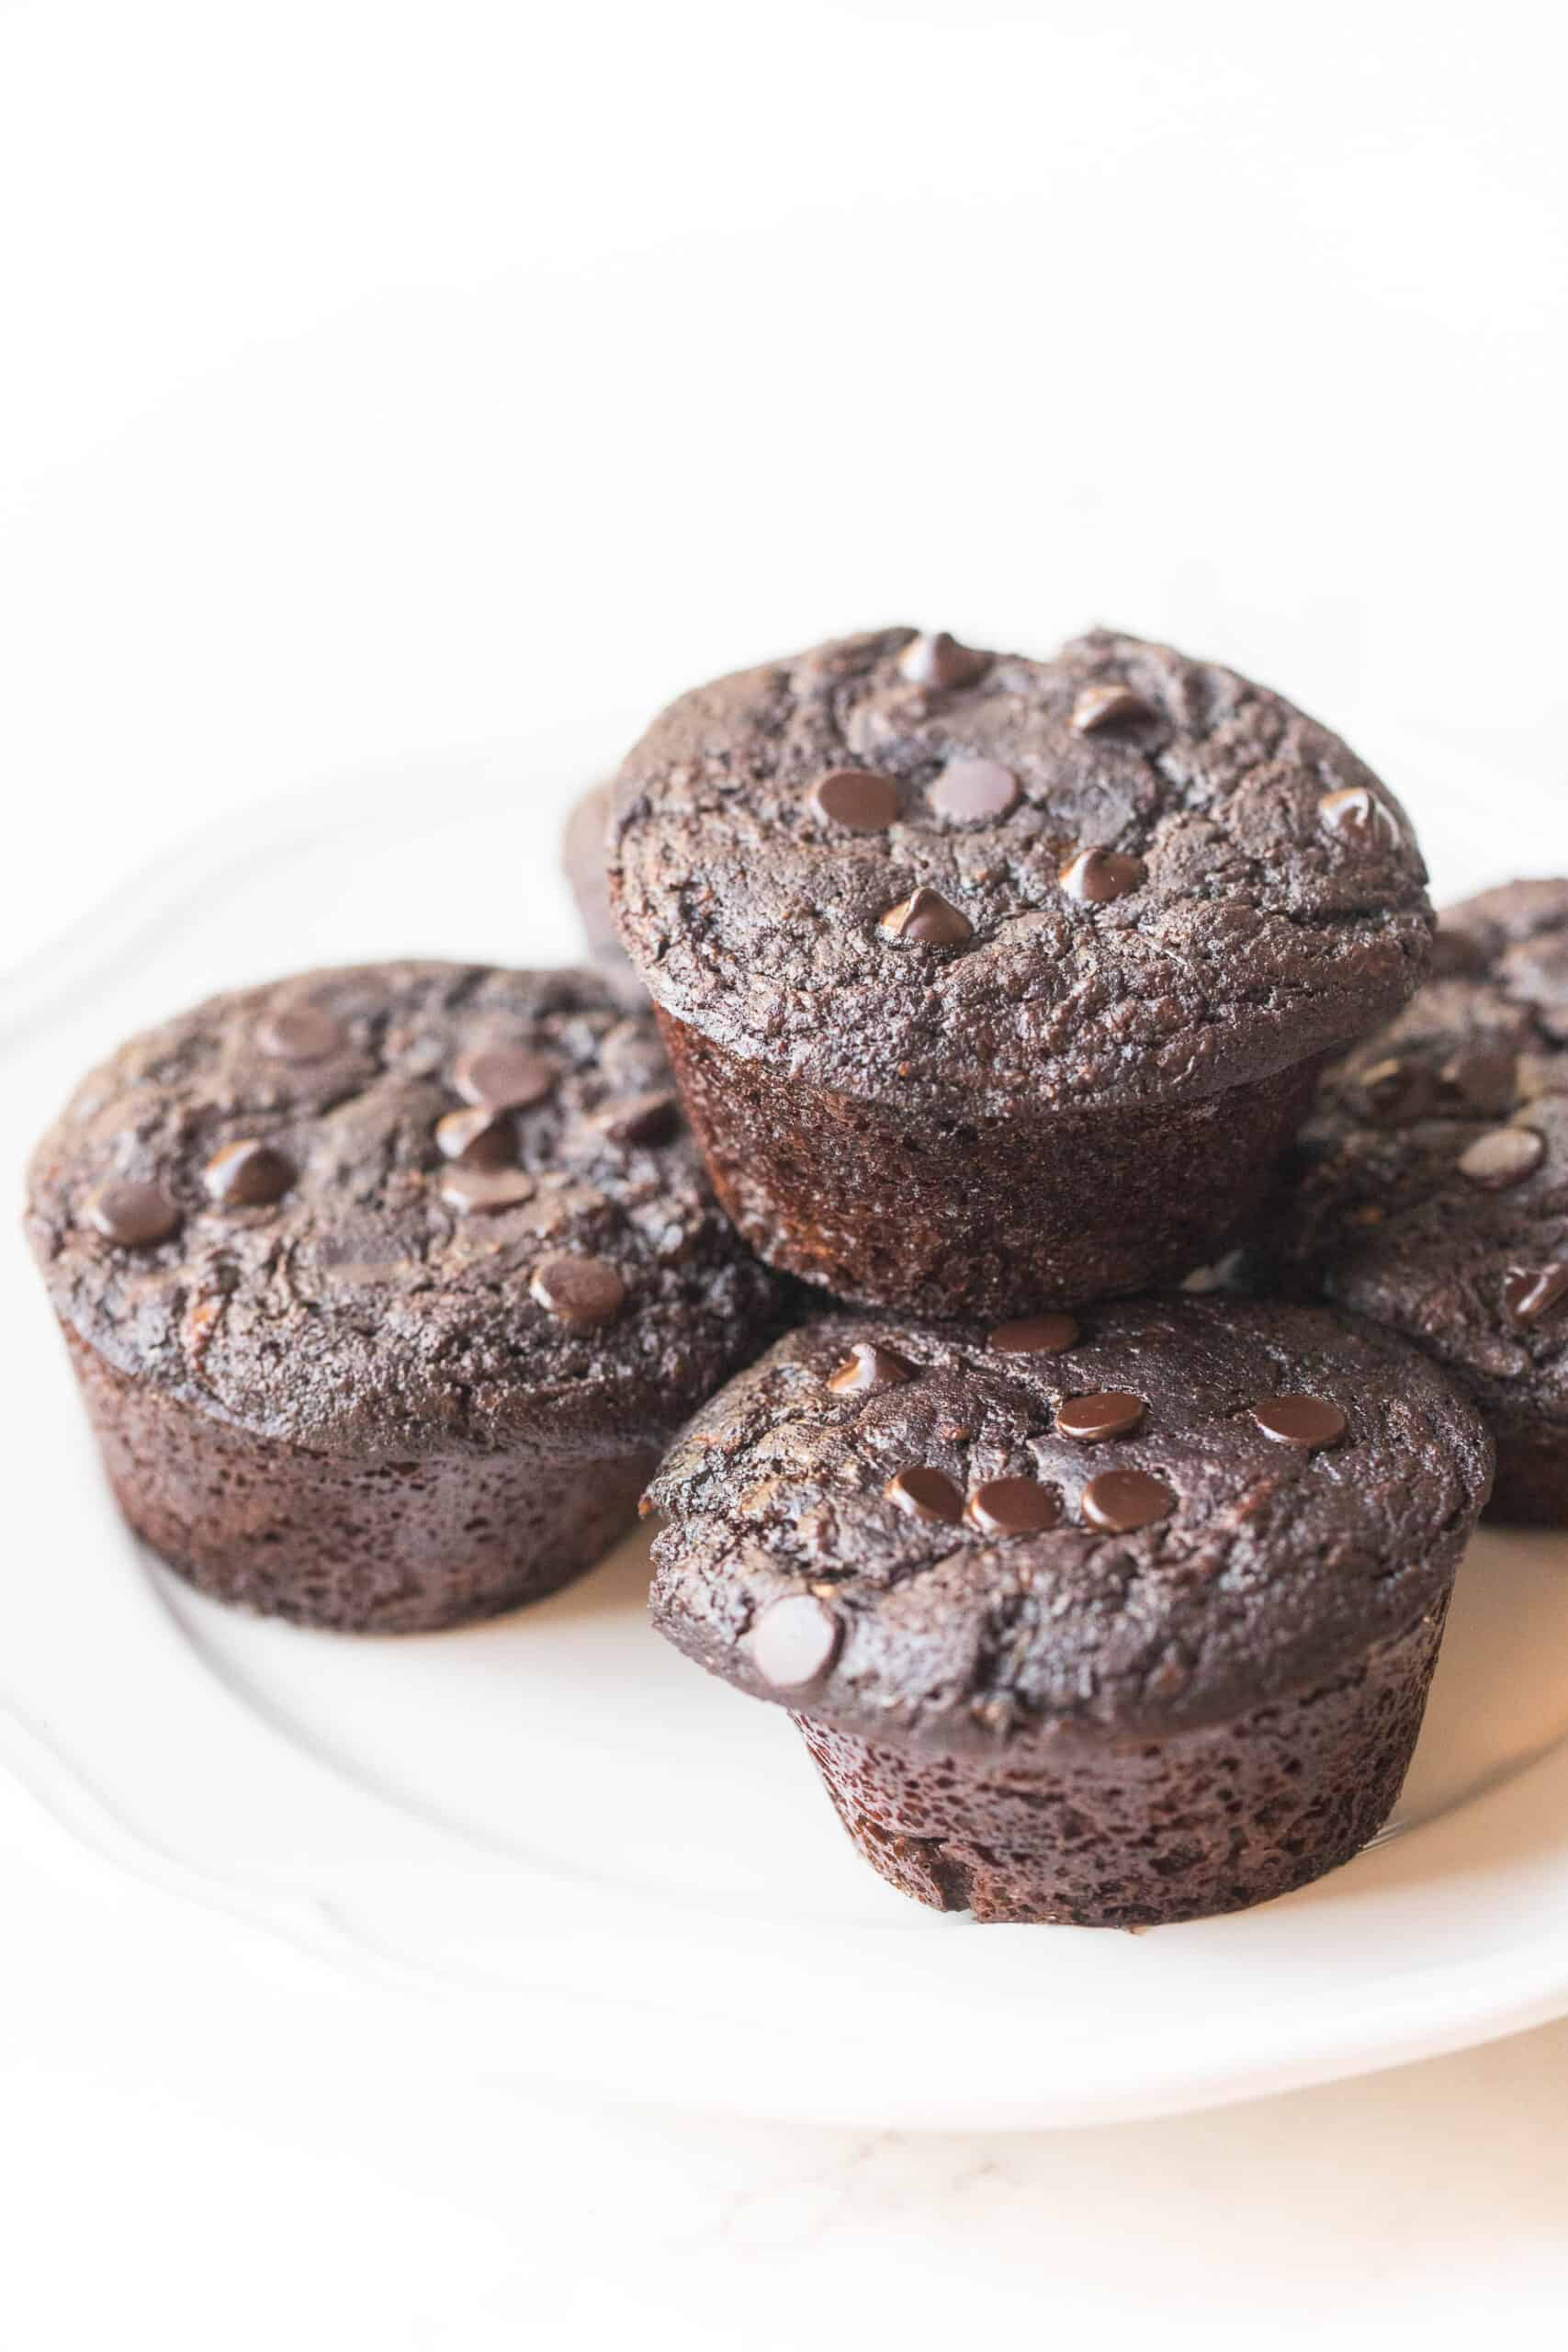 keto chocolate zucchini muffins on a white plate and background